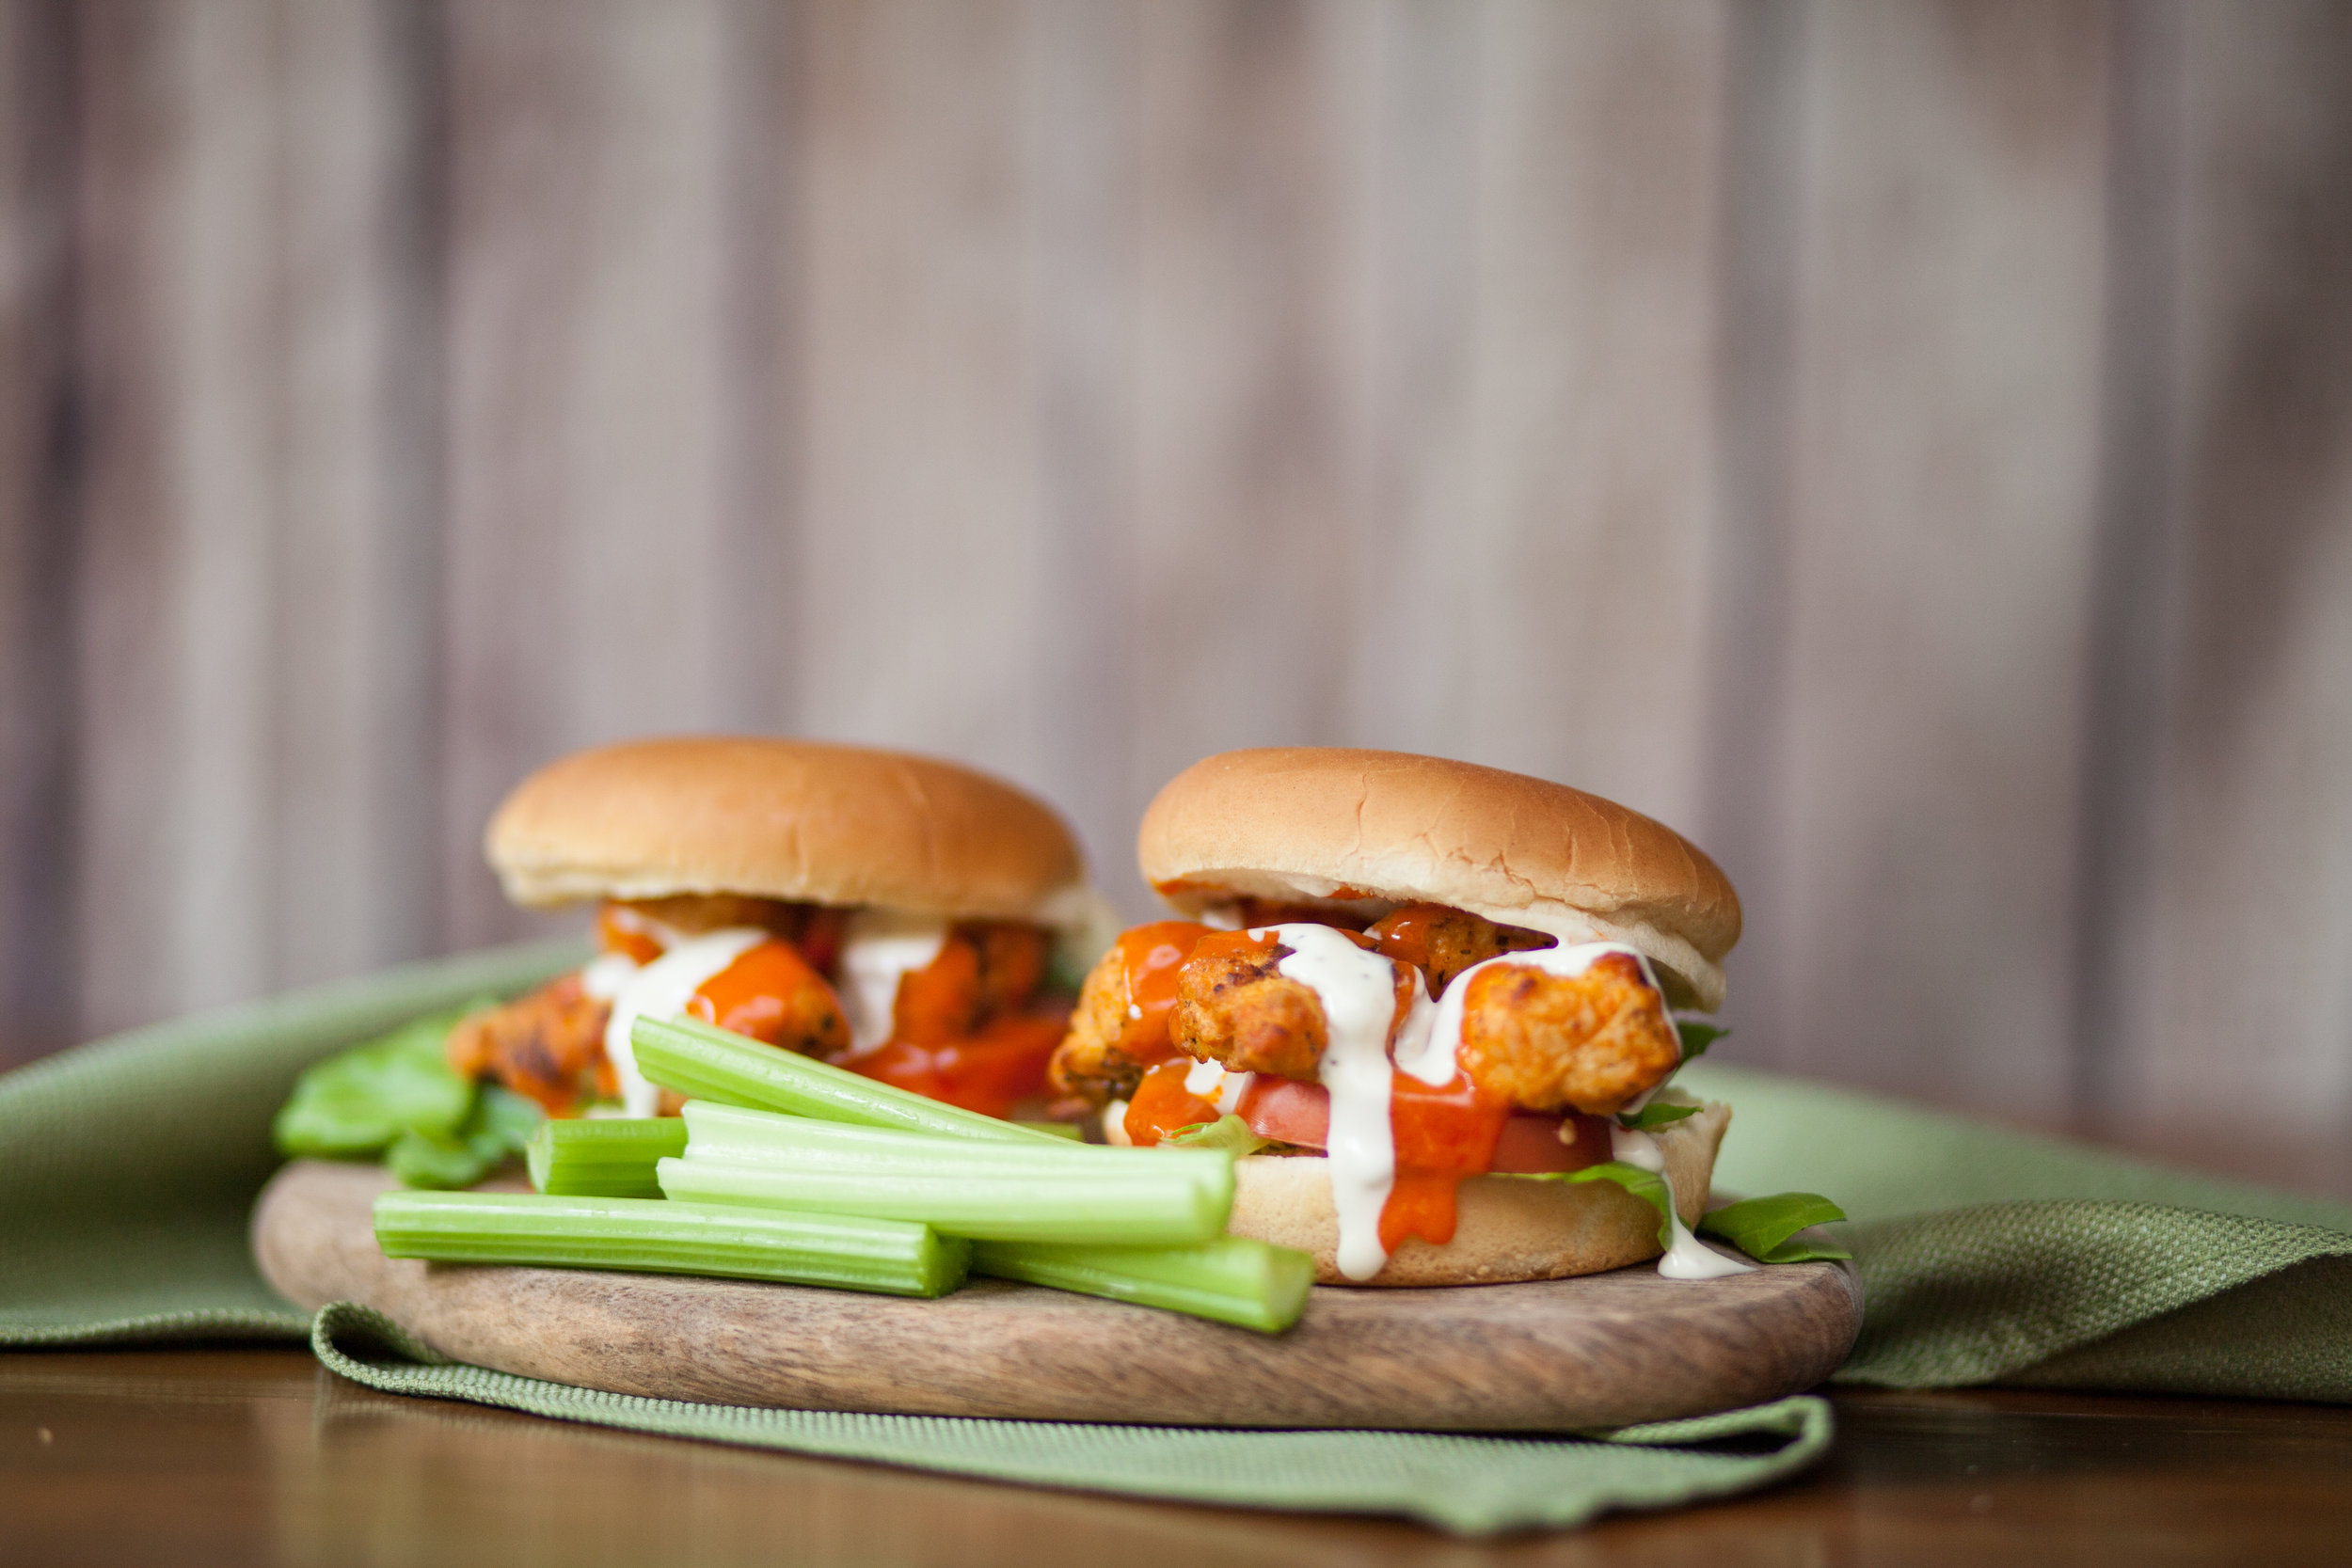 4. Buffalo Chicken Sandwiches - Buffalo chicken wings are a sports bar staple, but a tad messy out in the lot. Piling slow cooked shredded buffalo chicken on a Johnsonville Honey Bun allows you to ditch the wet wipes and get back to the pre-game festivities.